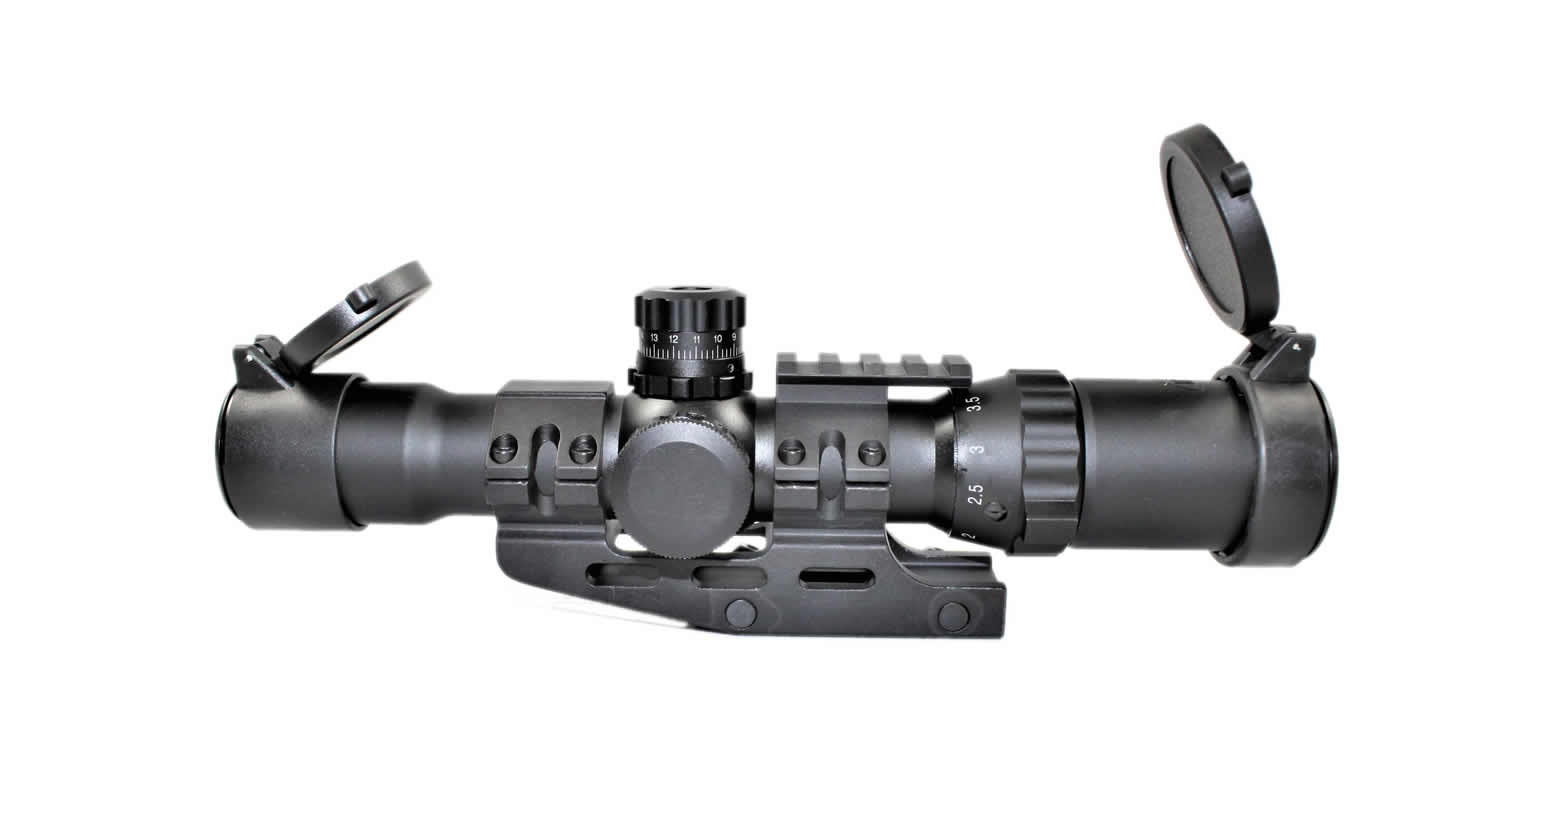 cbc-optic-assault-series-scope-combo-1-4x28-micro-red-dot-p4-sniper